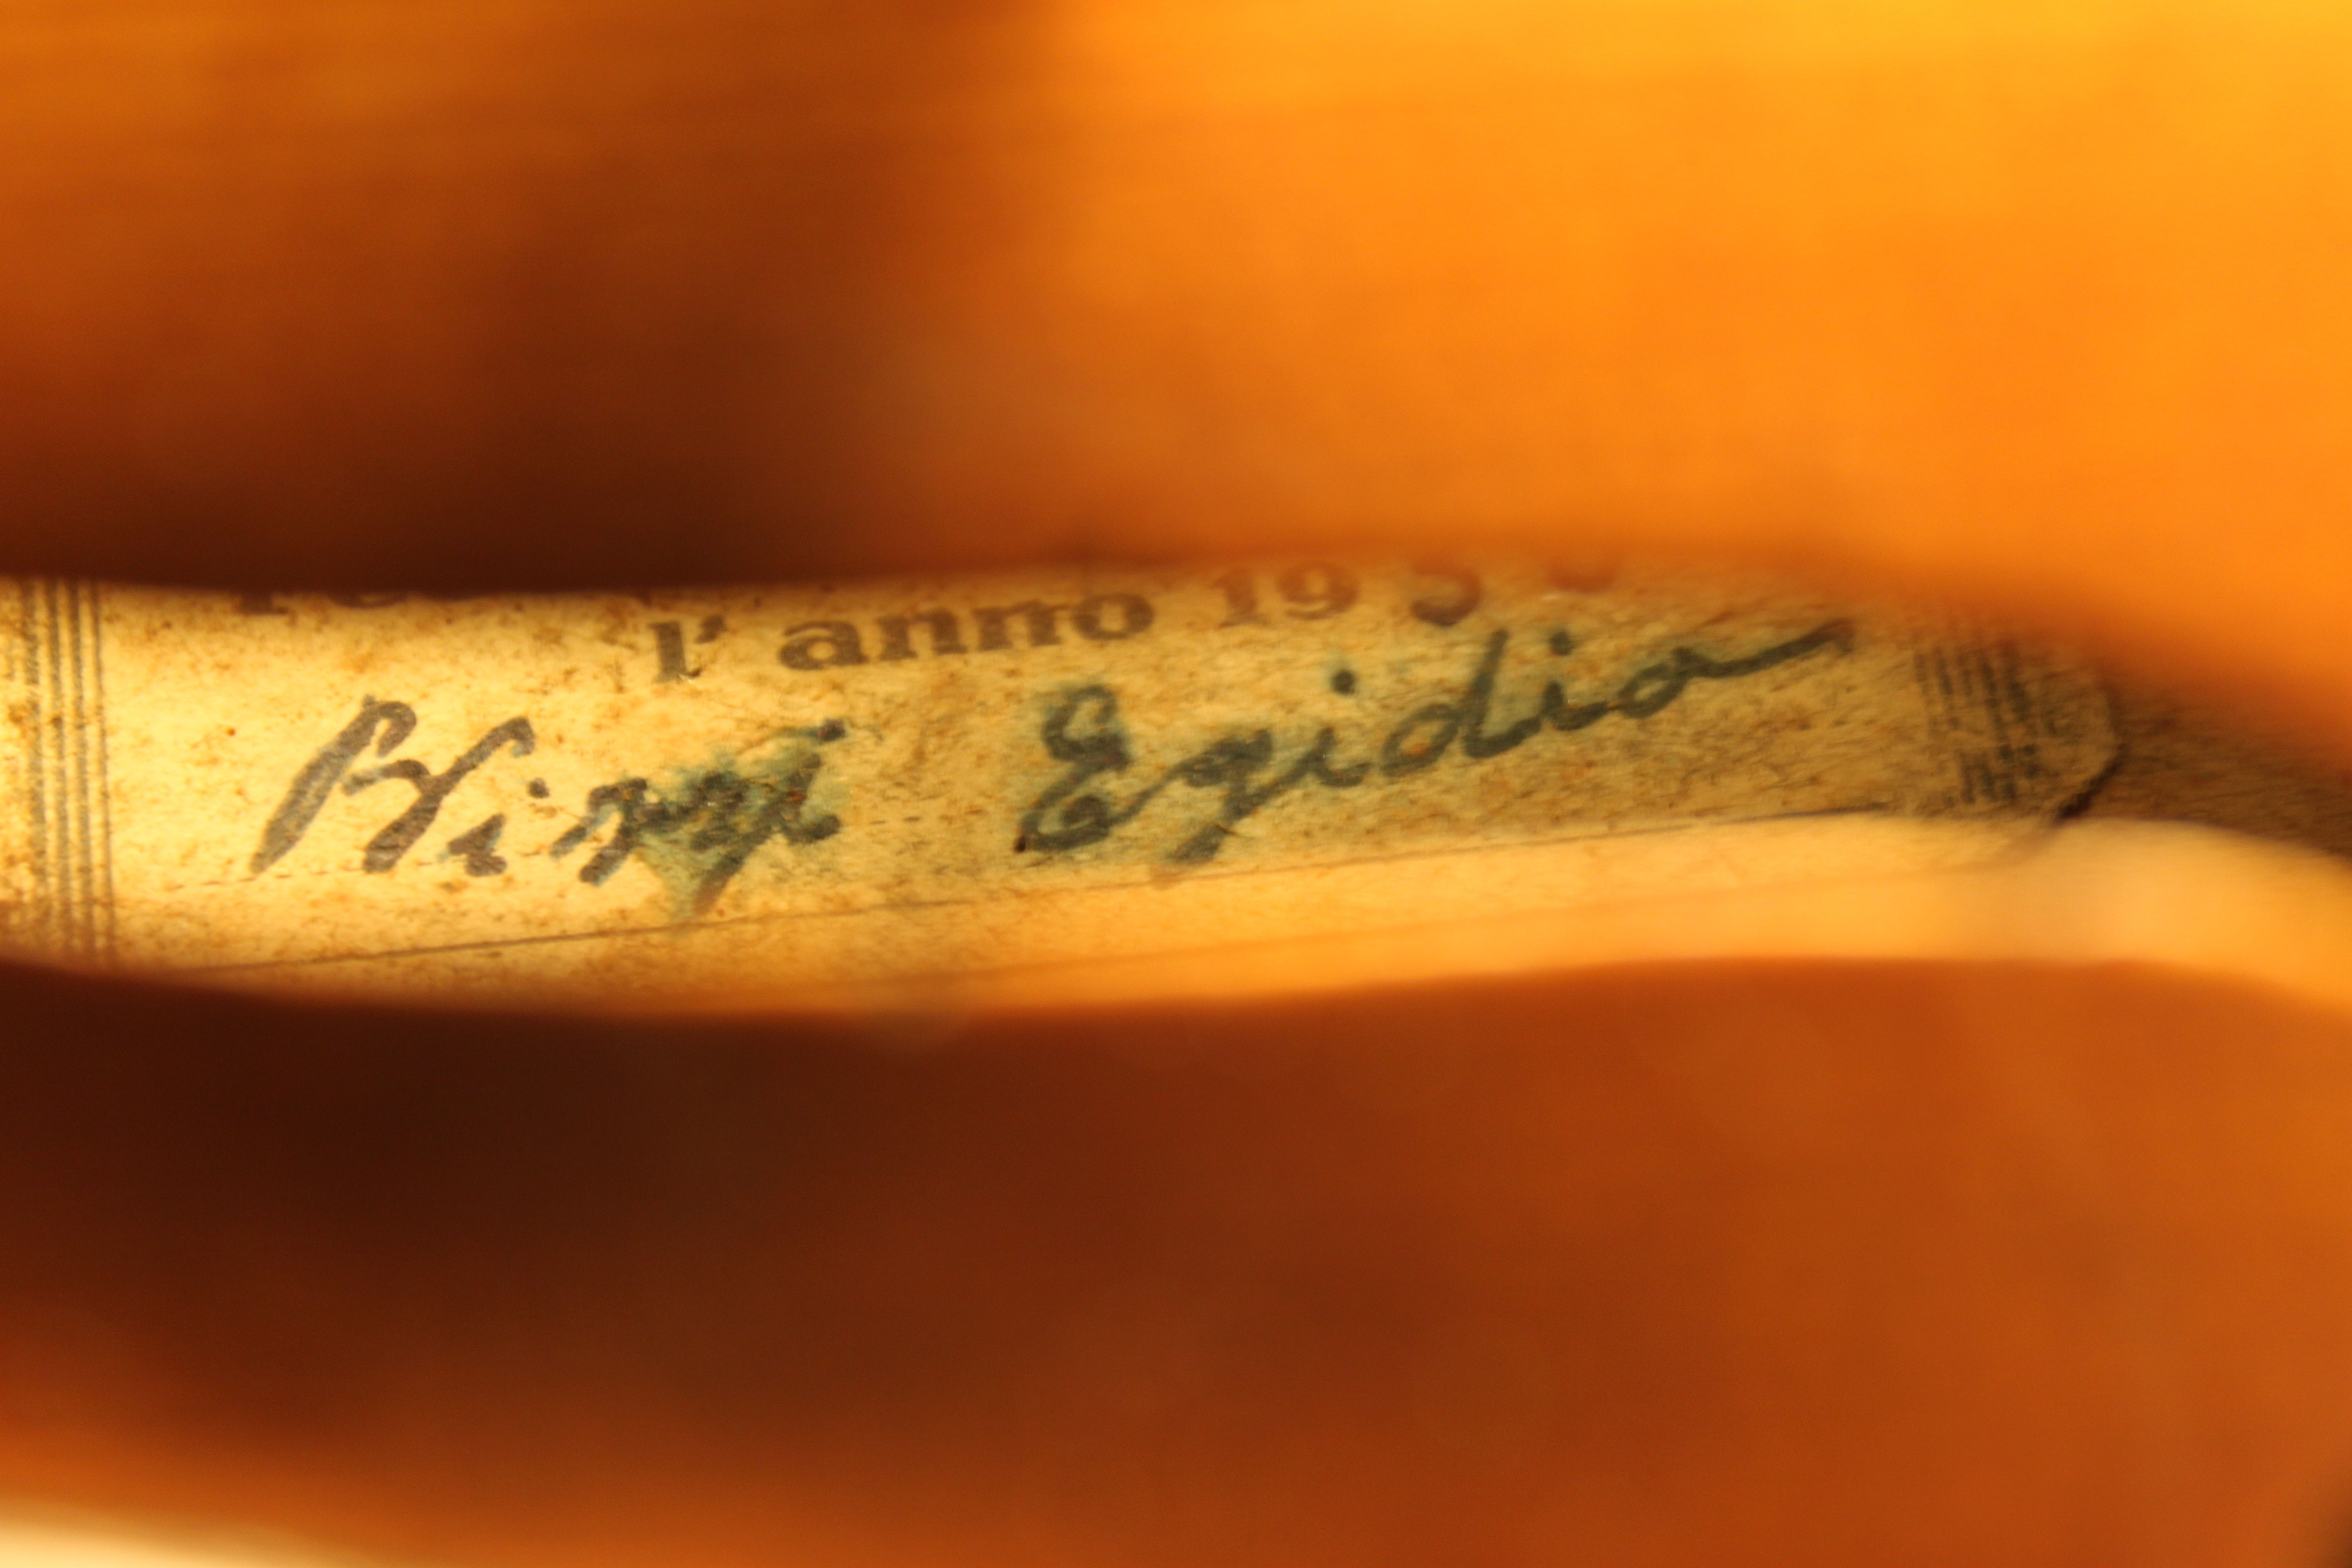 Italian violin by Egidia Bizzi 1950